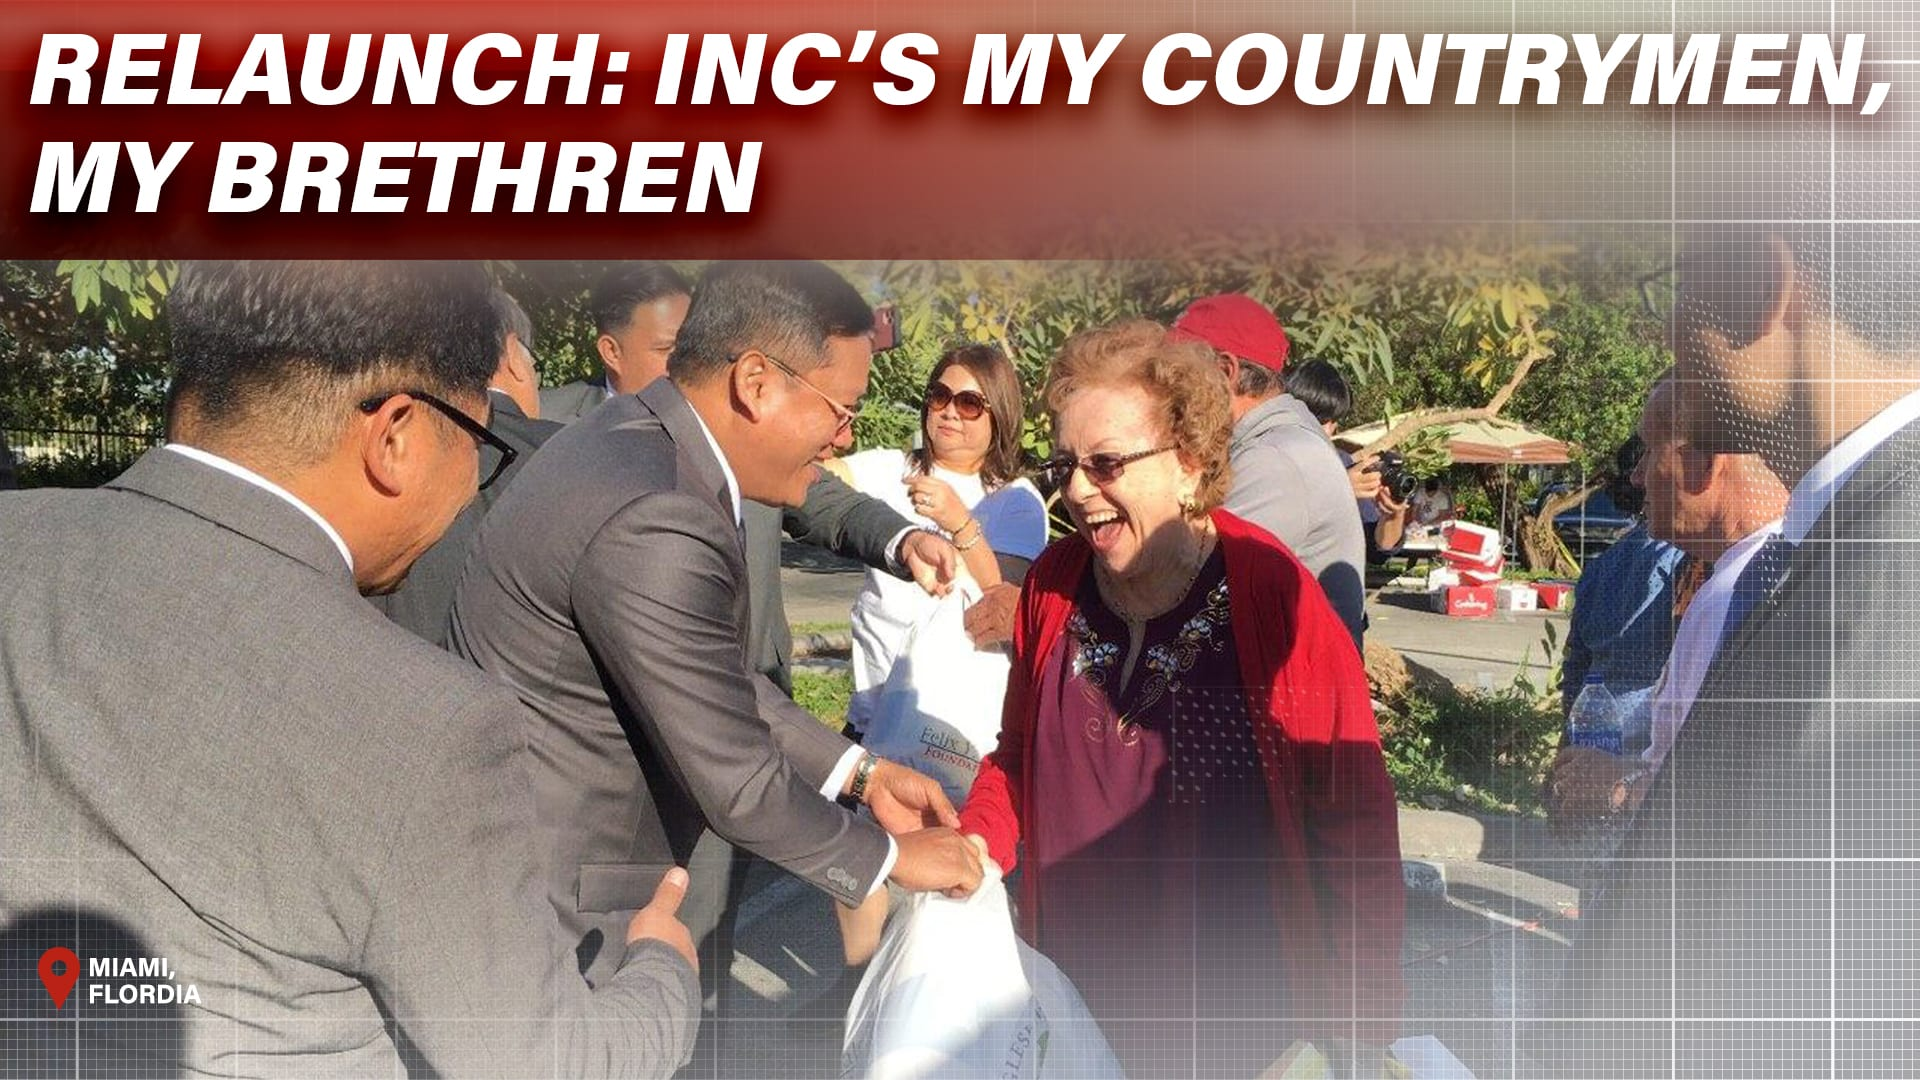 Relaunch: INC's My Countrymen, My Brethren